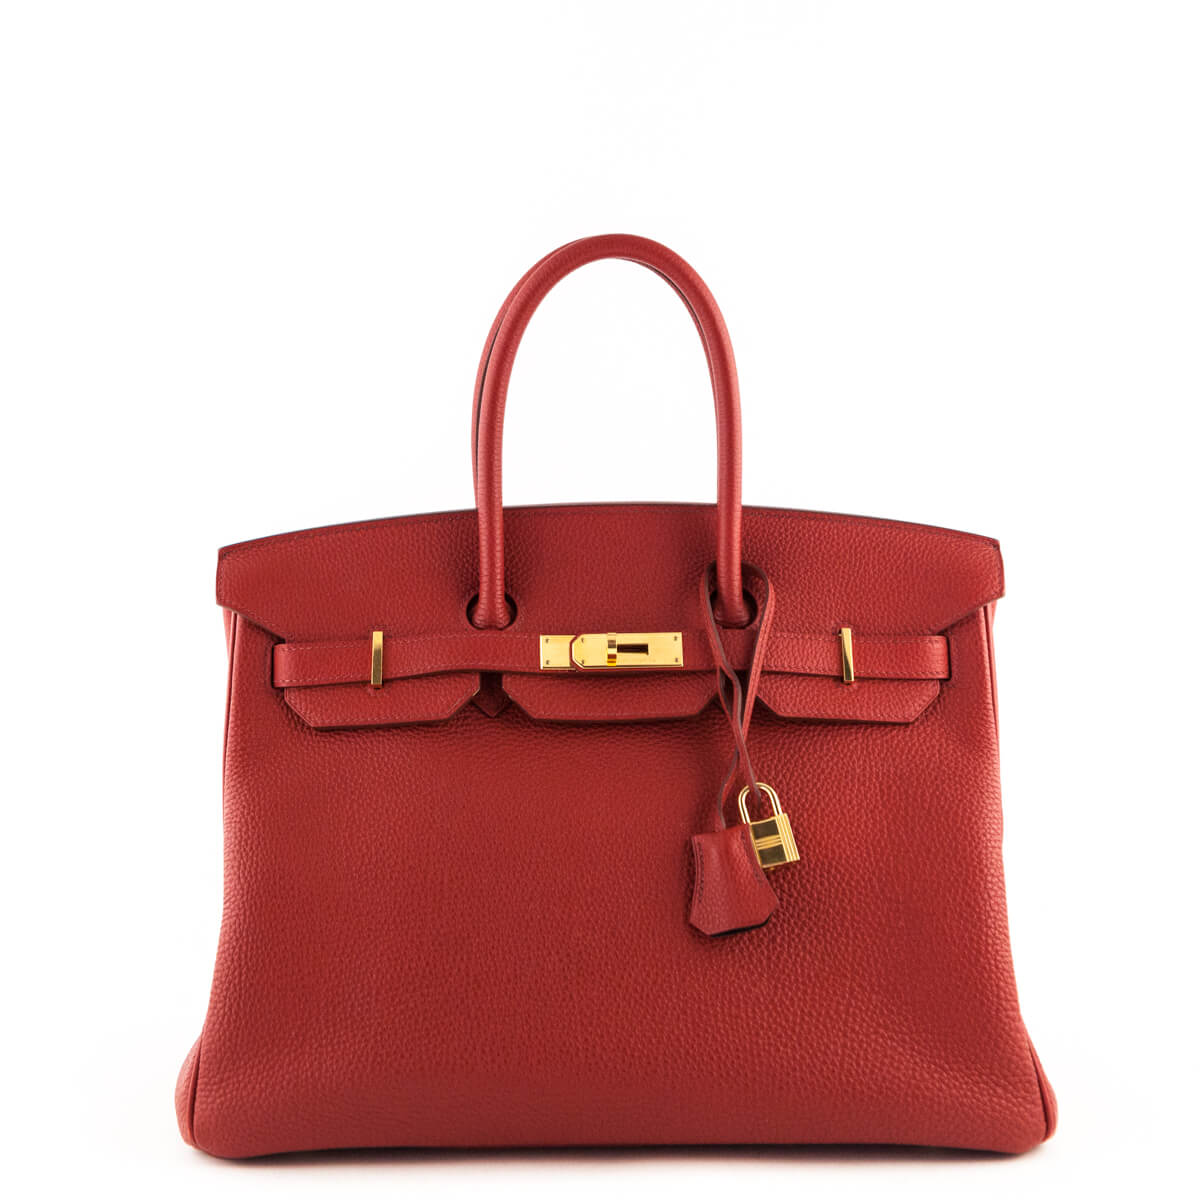 6f9cc3586bd6 Hermes Red Togo Birkin 35 - LOVE that BAG - Preowned Authentic Designer  Handbags ...